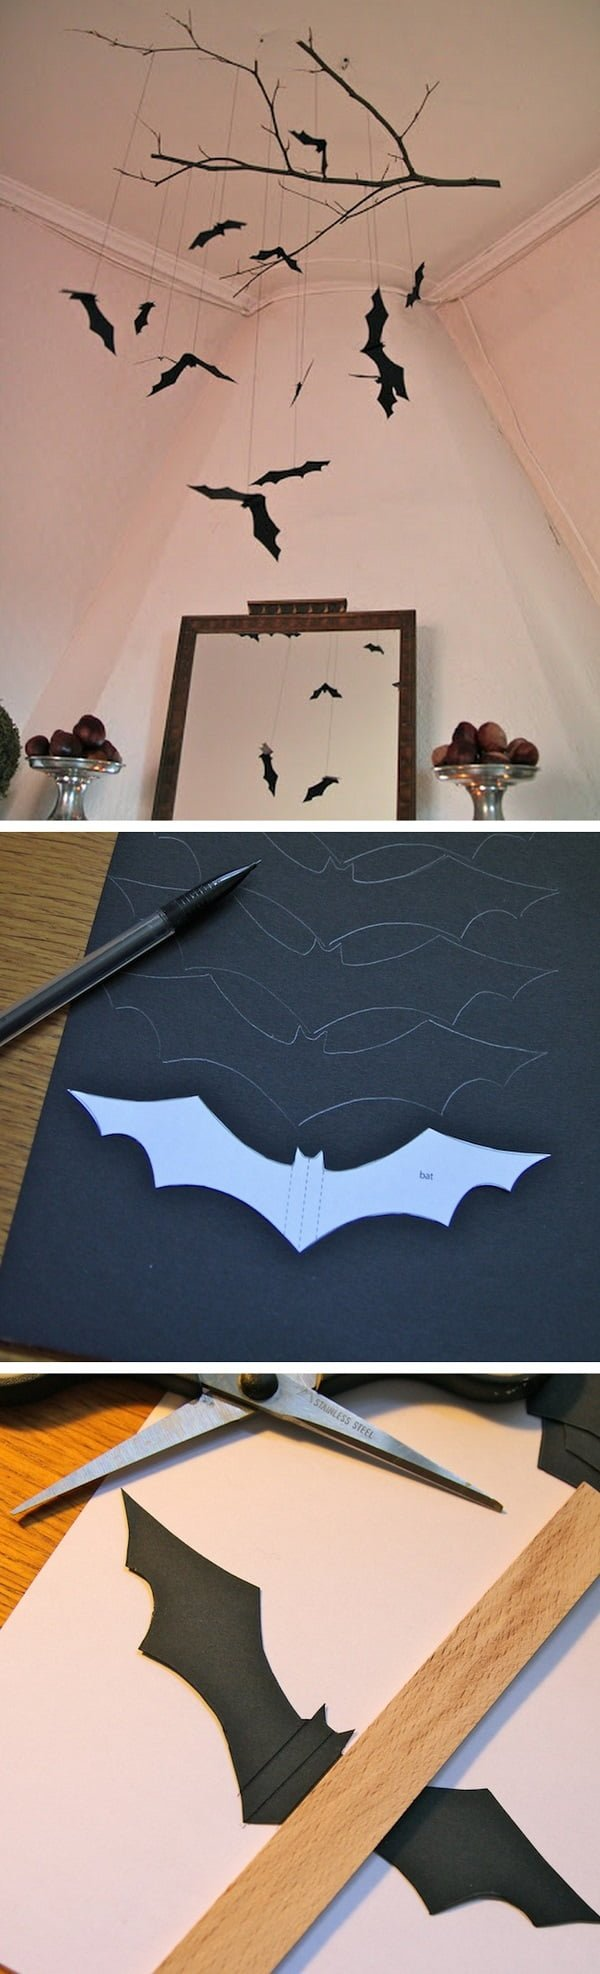 Check out the tutorial on how to make a DIY bat mobile for Halloween home decoration